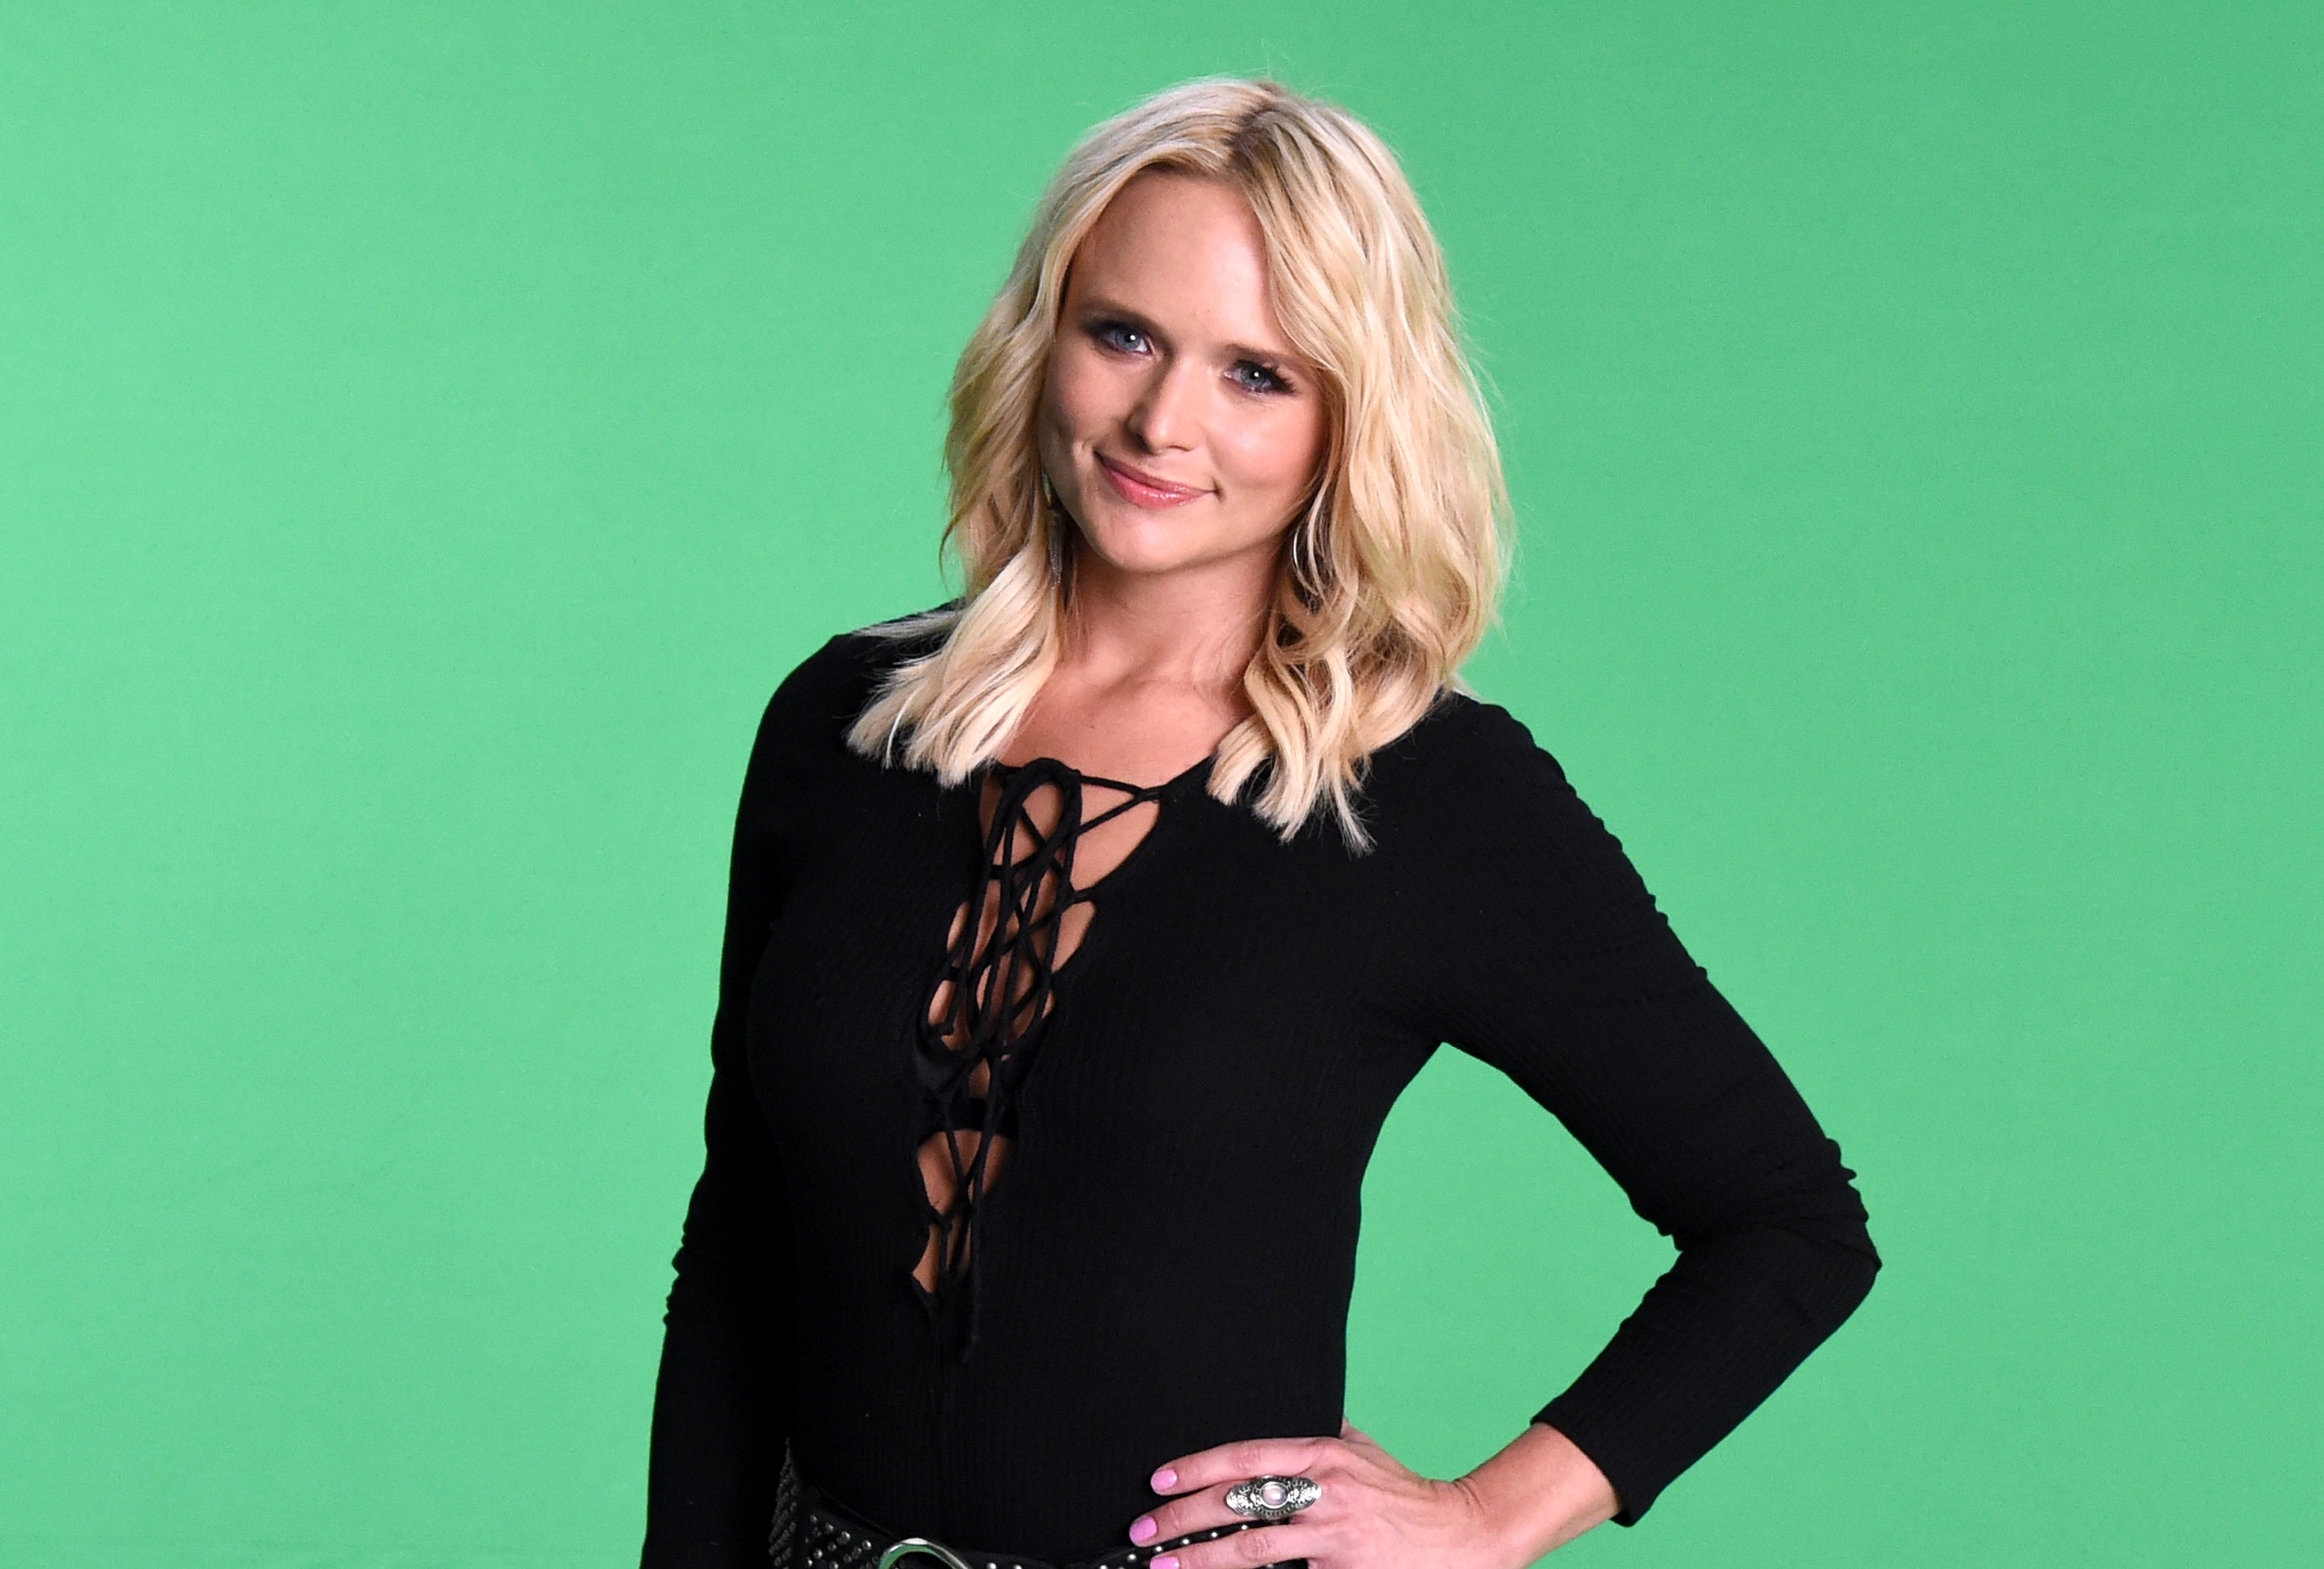 Singer Miranda Lambert poses in front of a green background at the 2016 iHeartCountry Festival